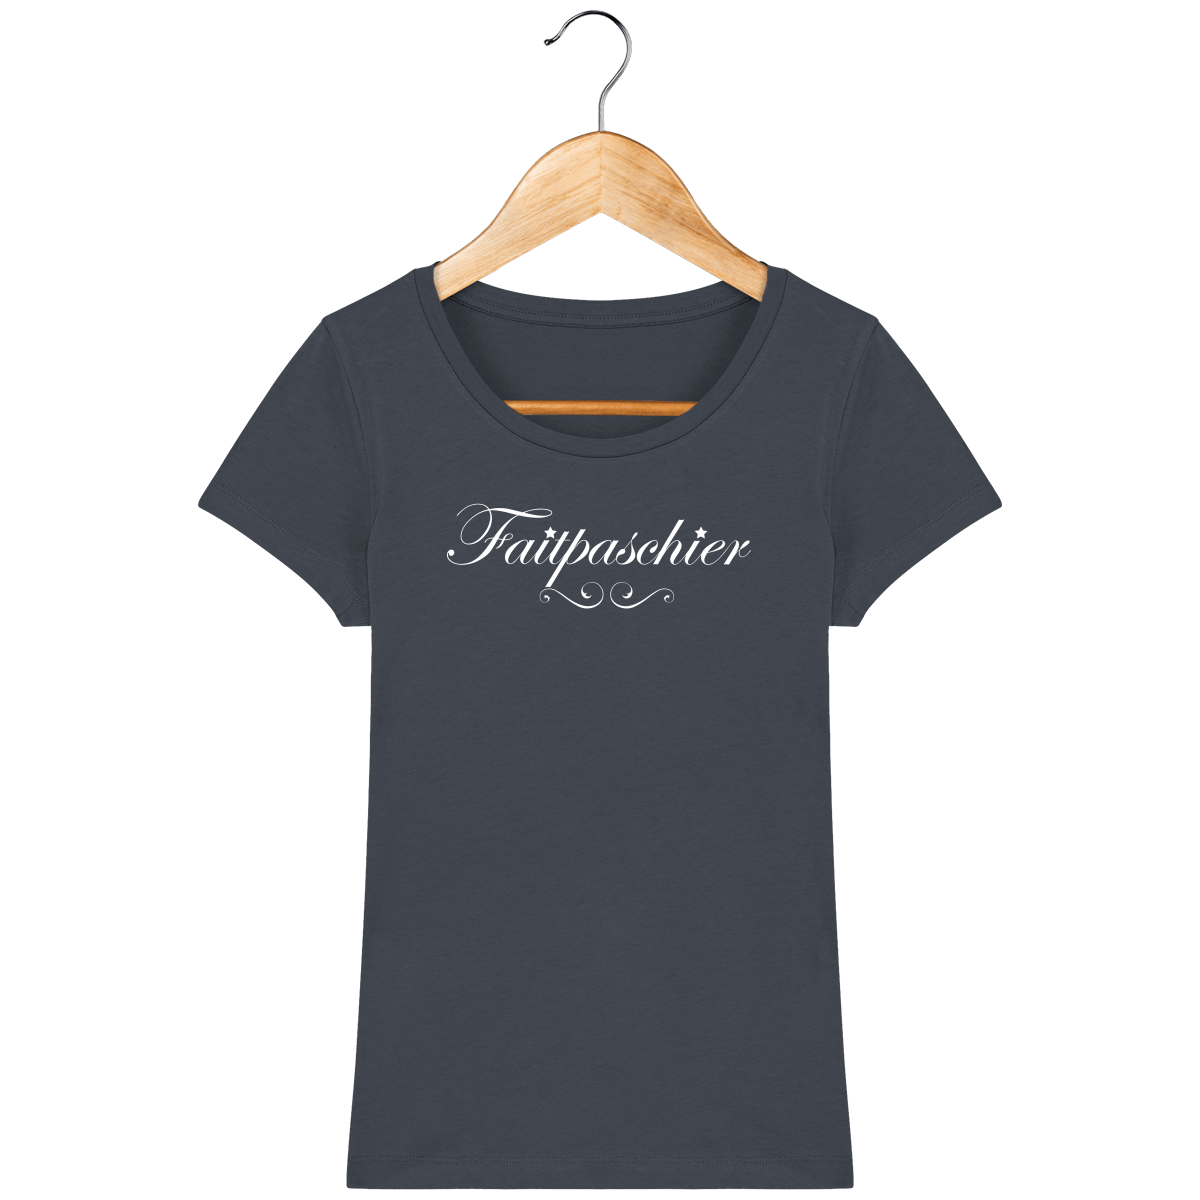 T-Shirt Femme Faitpaschier – India Ink Grey – Face